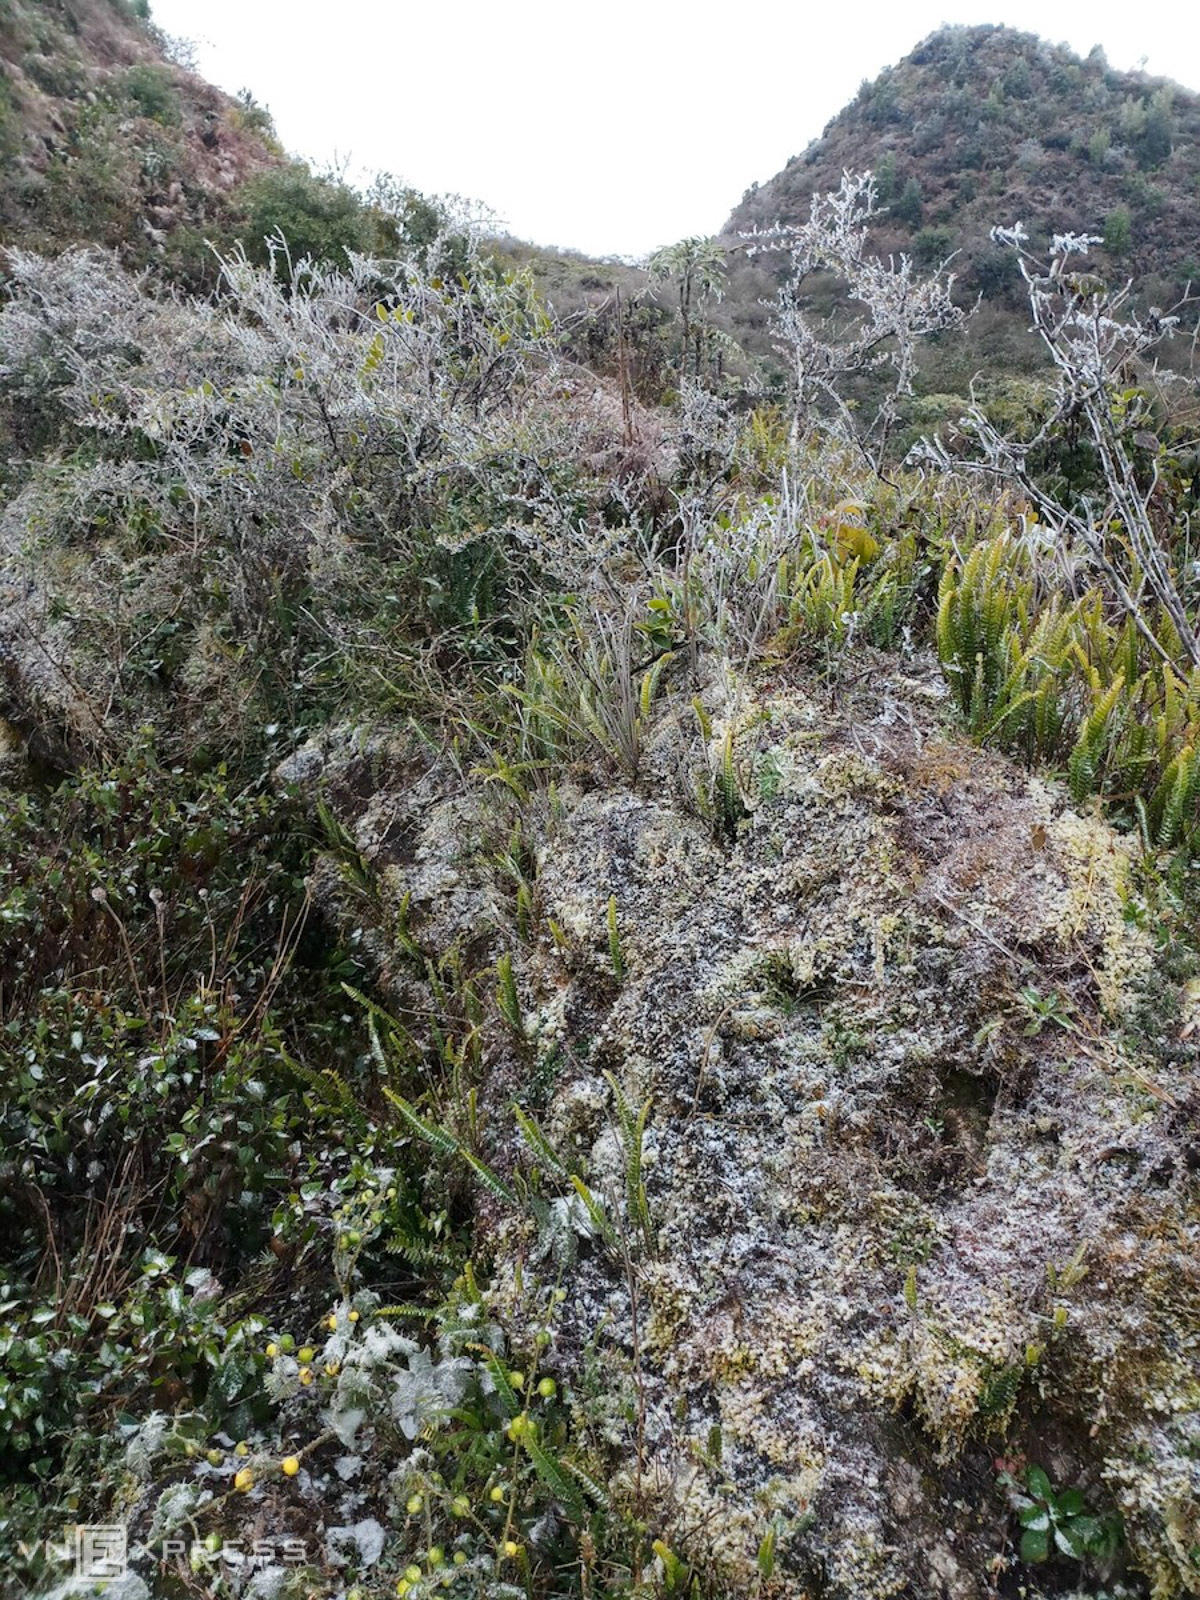 Ha Giang was frozen in Xin Cai commune, Meo Vac district and Dong Van district when the temperature dropped to one degree C.